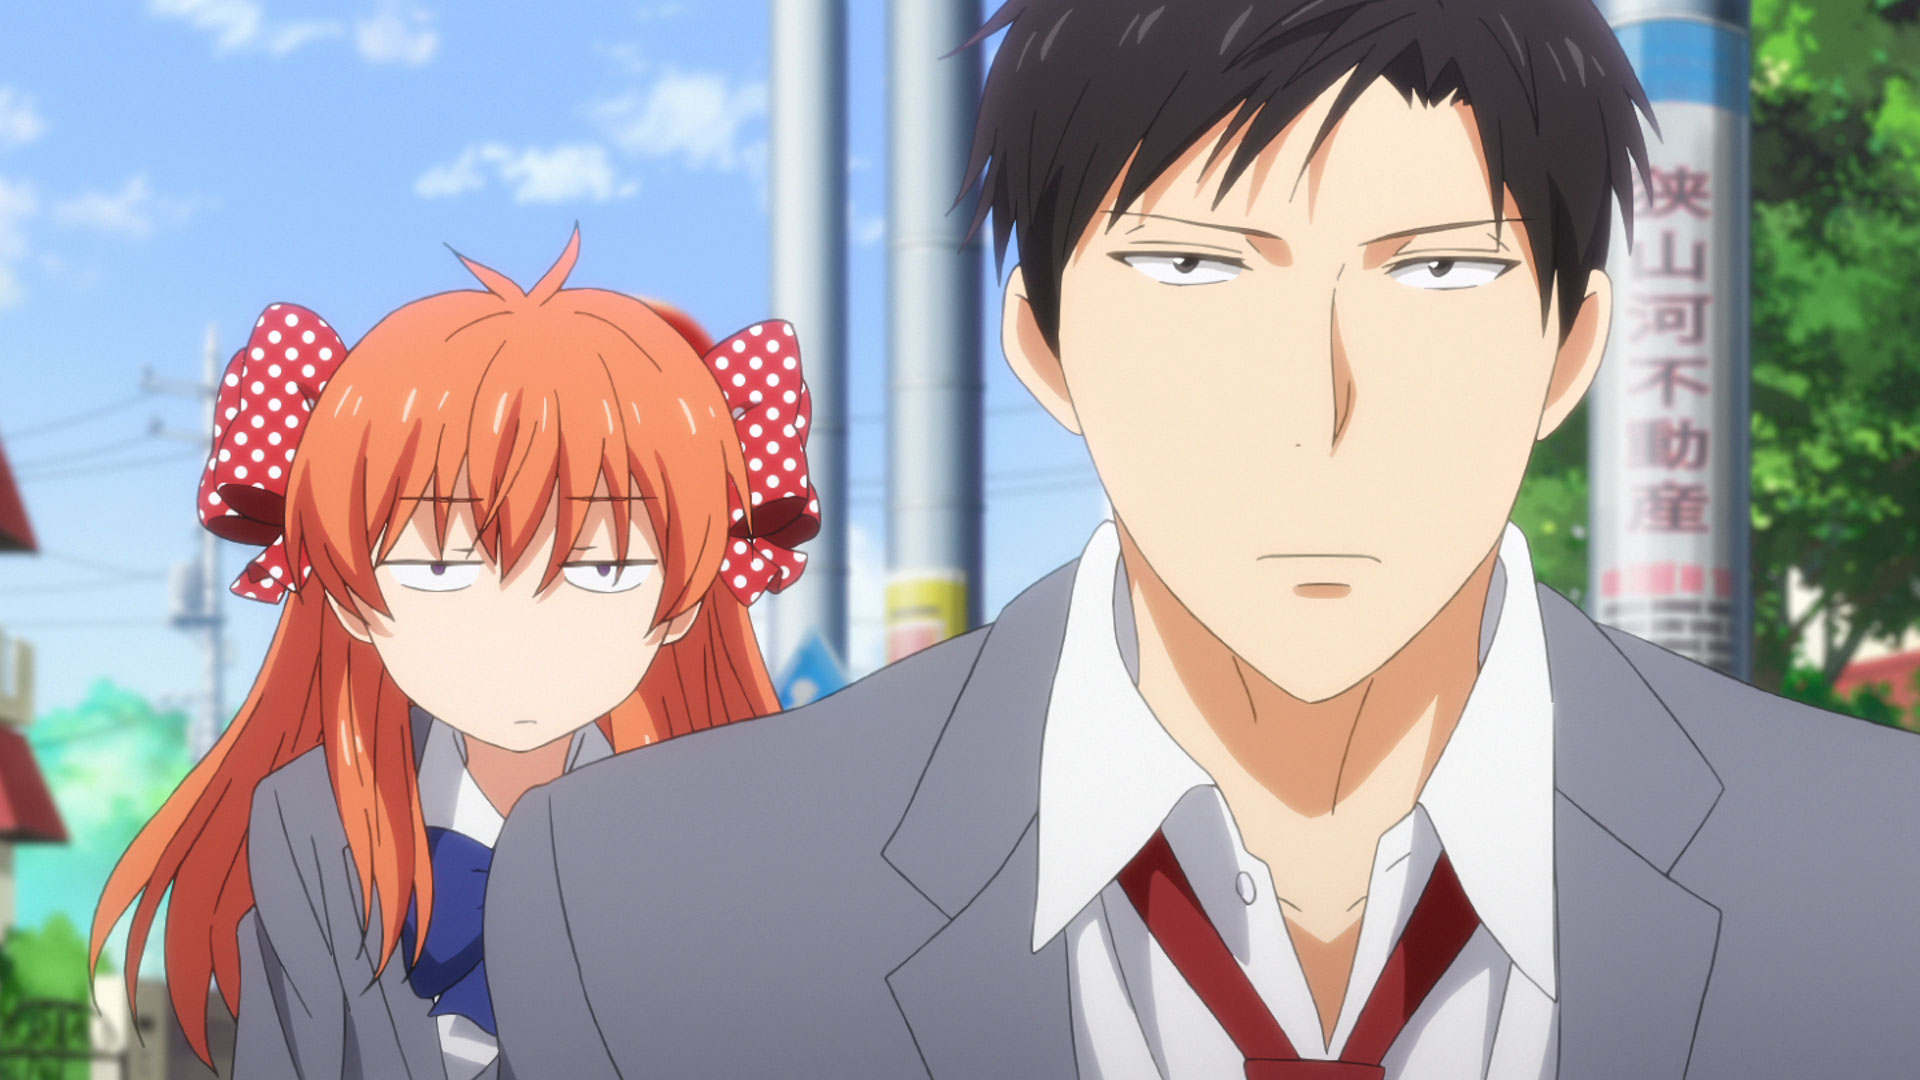 Monthly Girls Nozaki Kun Box Set Limited Edition Blu Ray